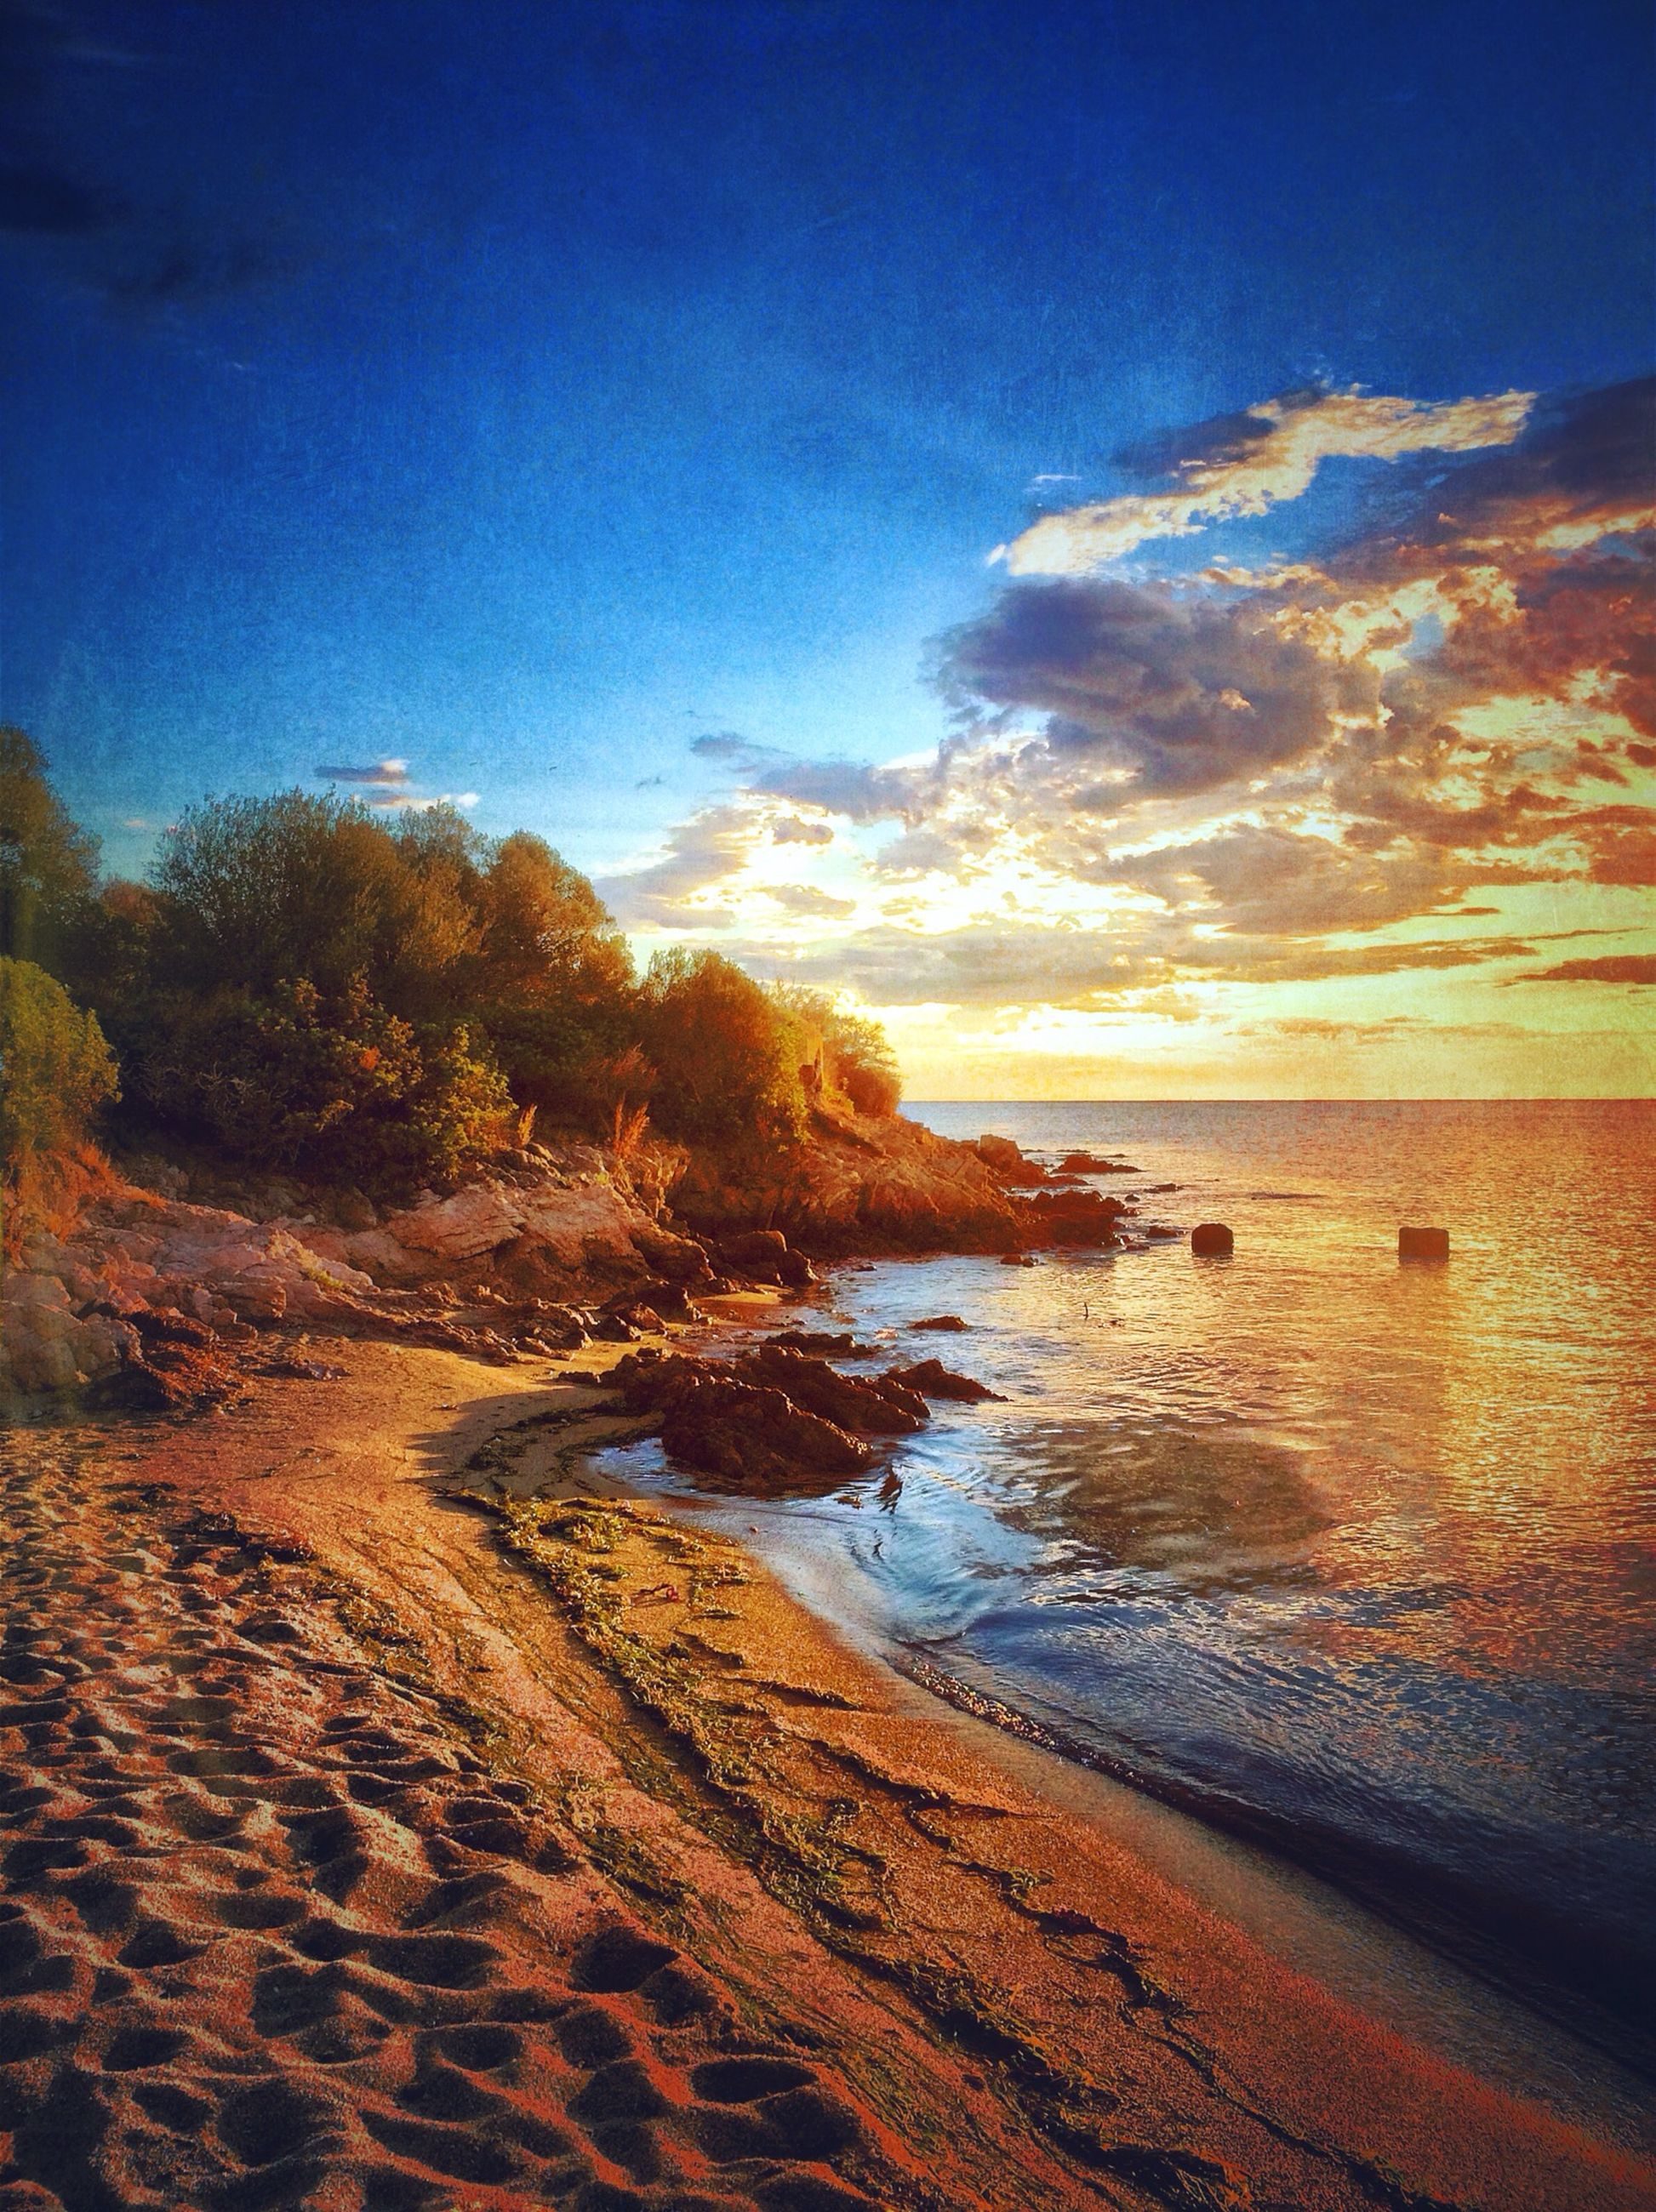 water, tranquil scene, scenics, tranquility, sky, beauty in nature, beach, sea, sunset, nature, shore, idyllic, reflection, sand, blue, cloud - sky, horizon over water, sunlight, outdoors, tree